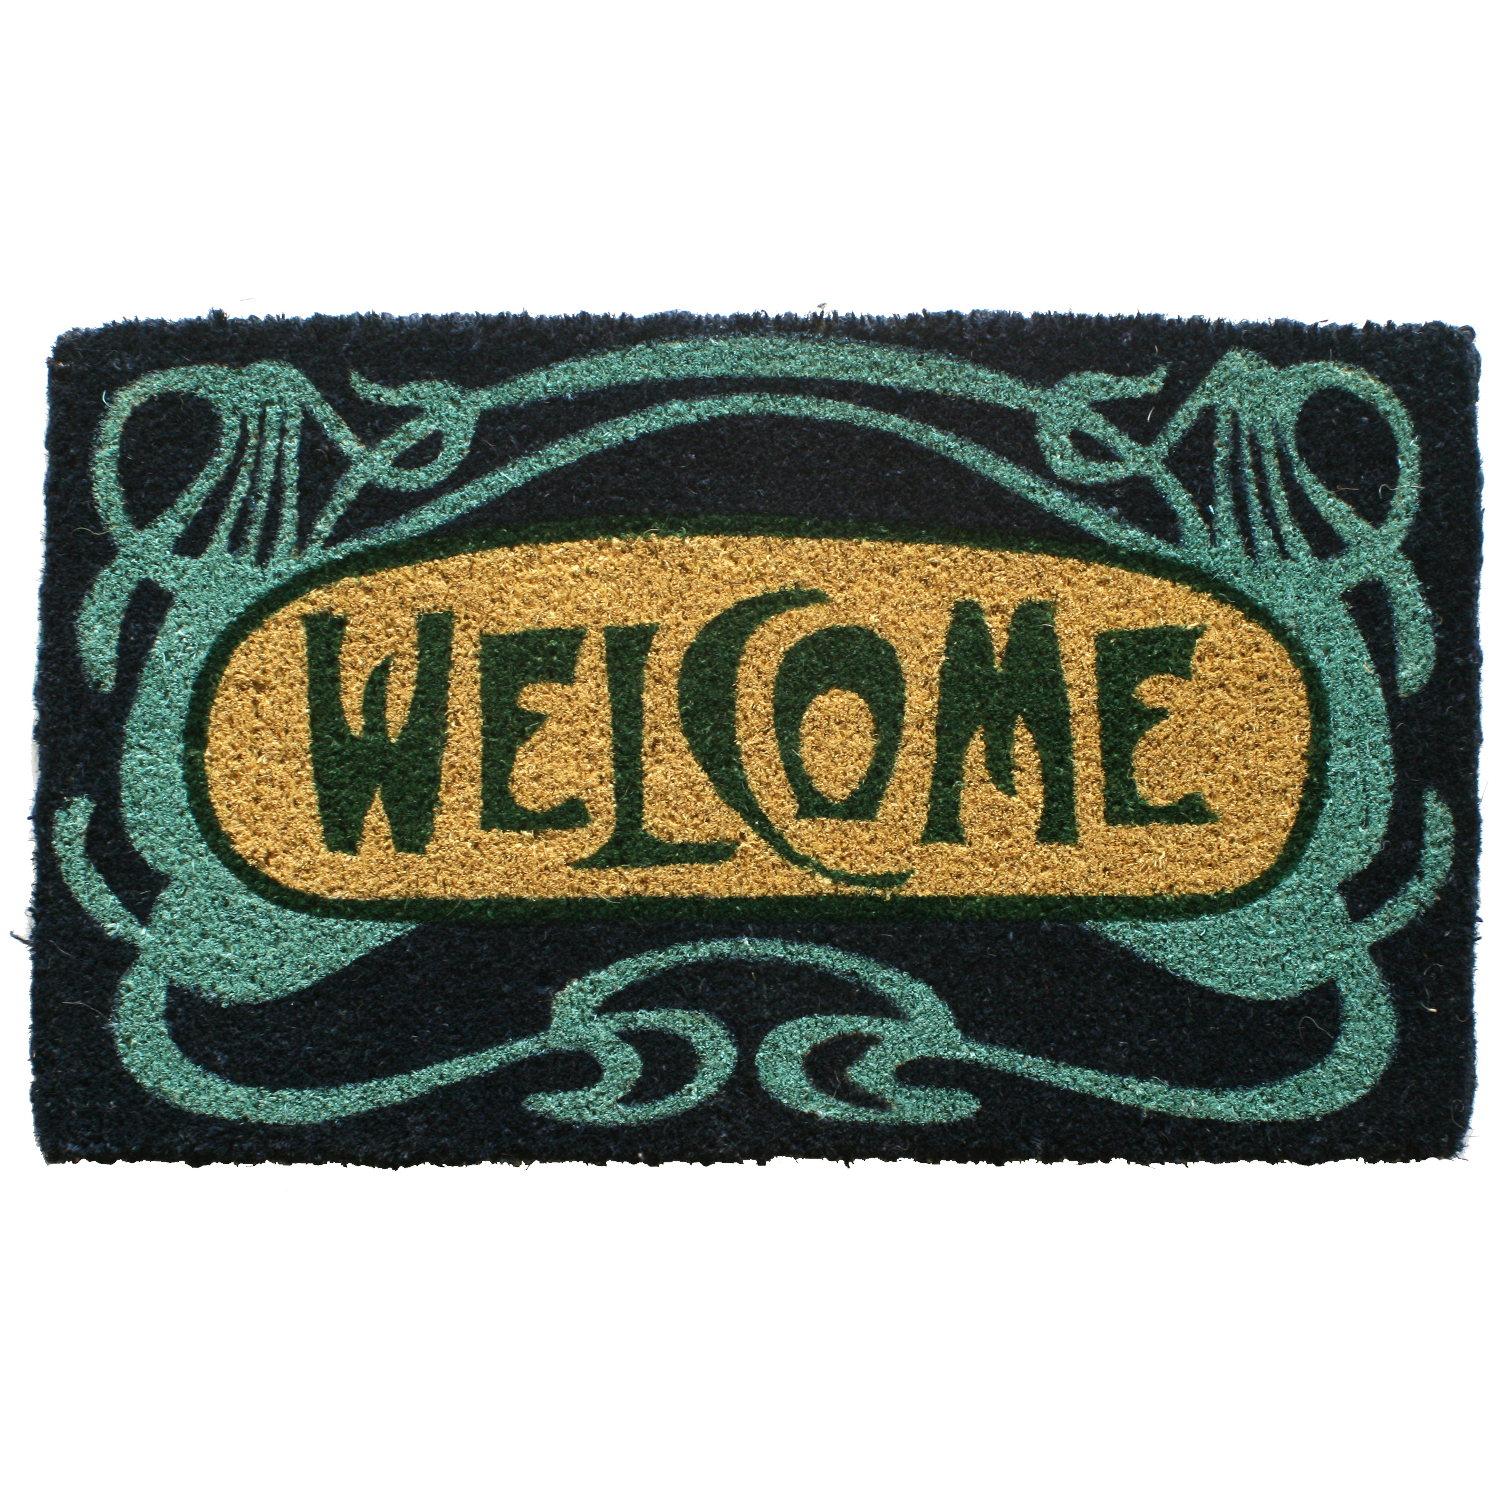 Entryways Art Deco Welcome Hand Woven Coir Doormat, 18 x 30 Inch